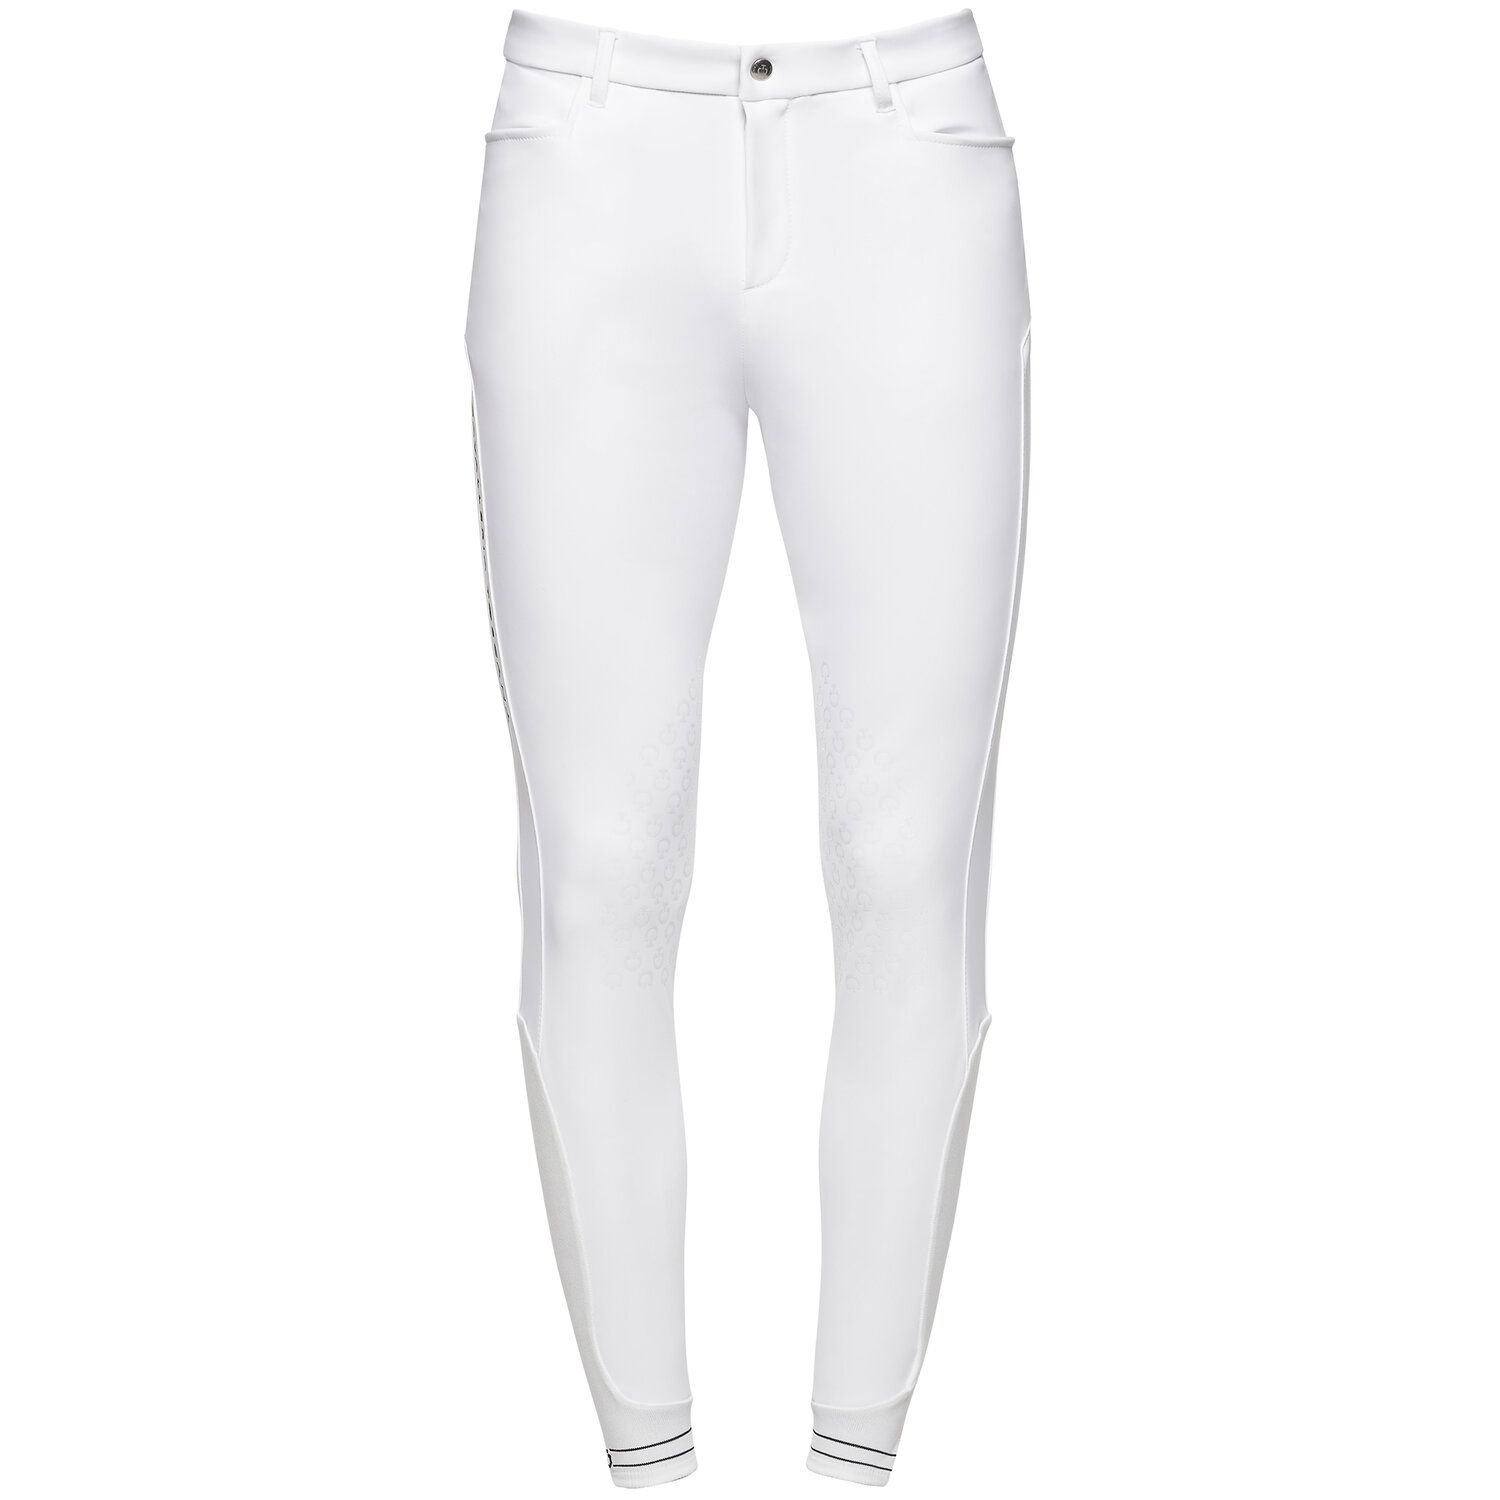 Men`s jumping breeches with embroidery logo